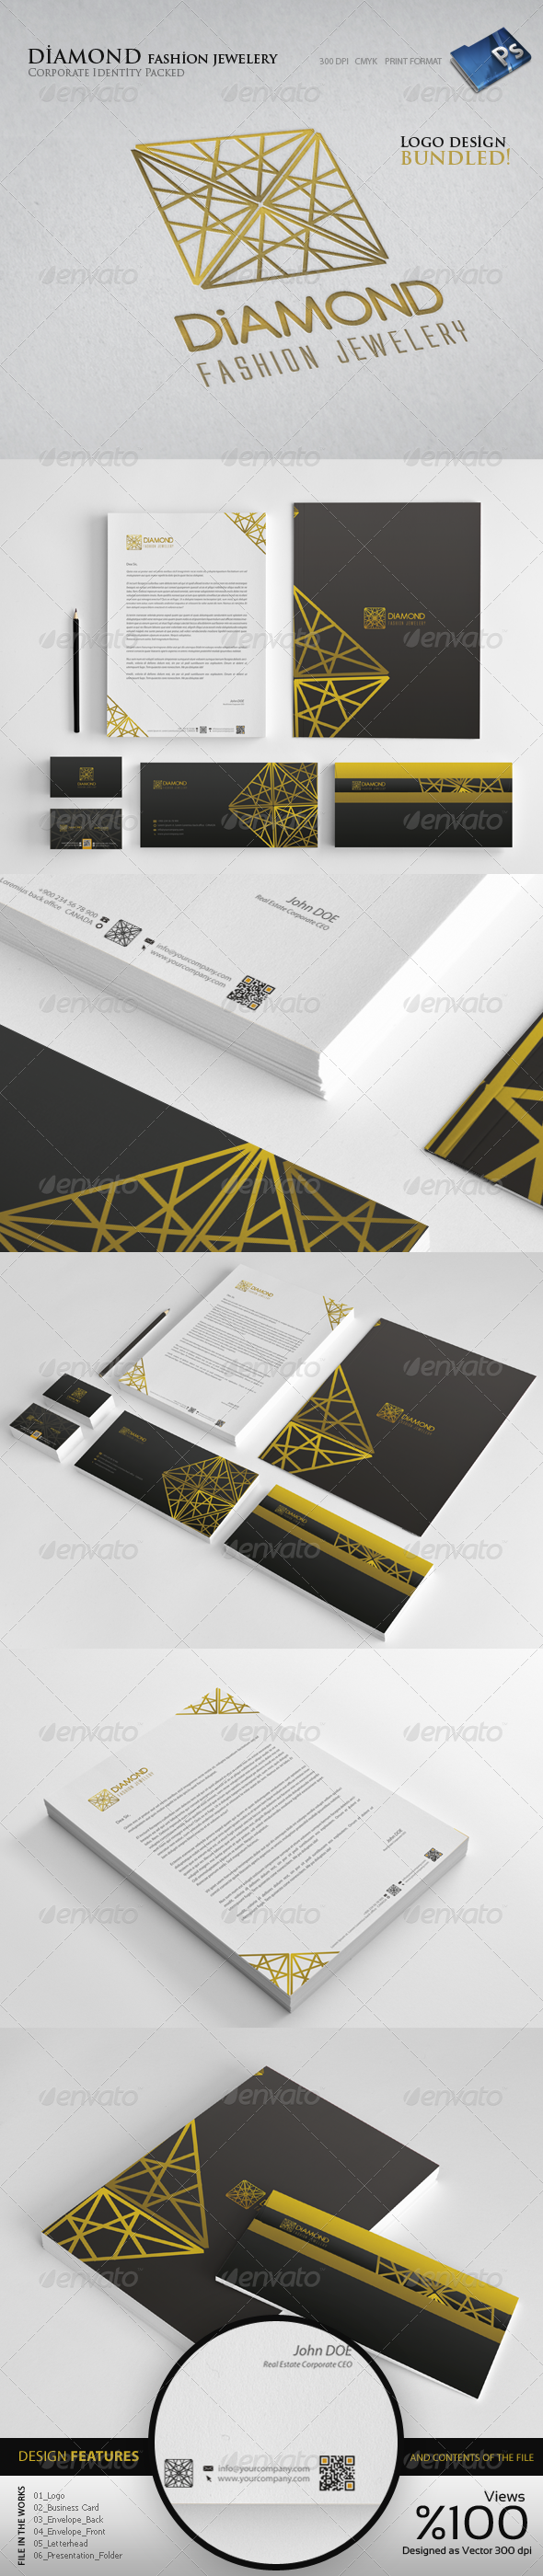 Diamond Jewelery  - Corporate identity - Stationery Print Templates